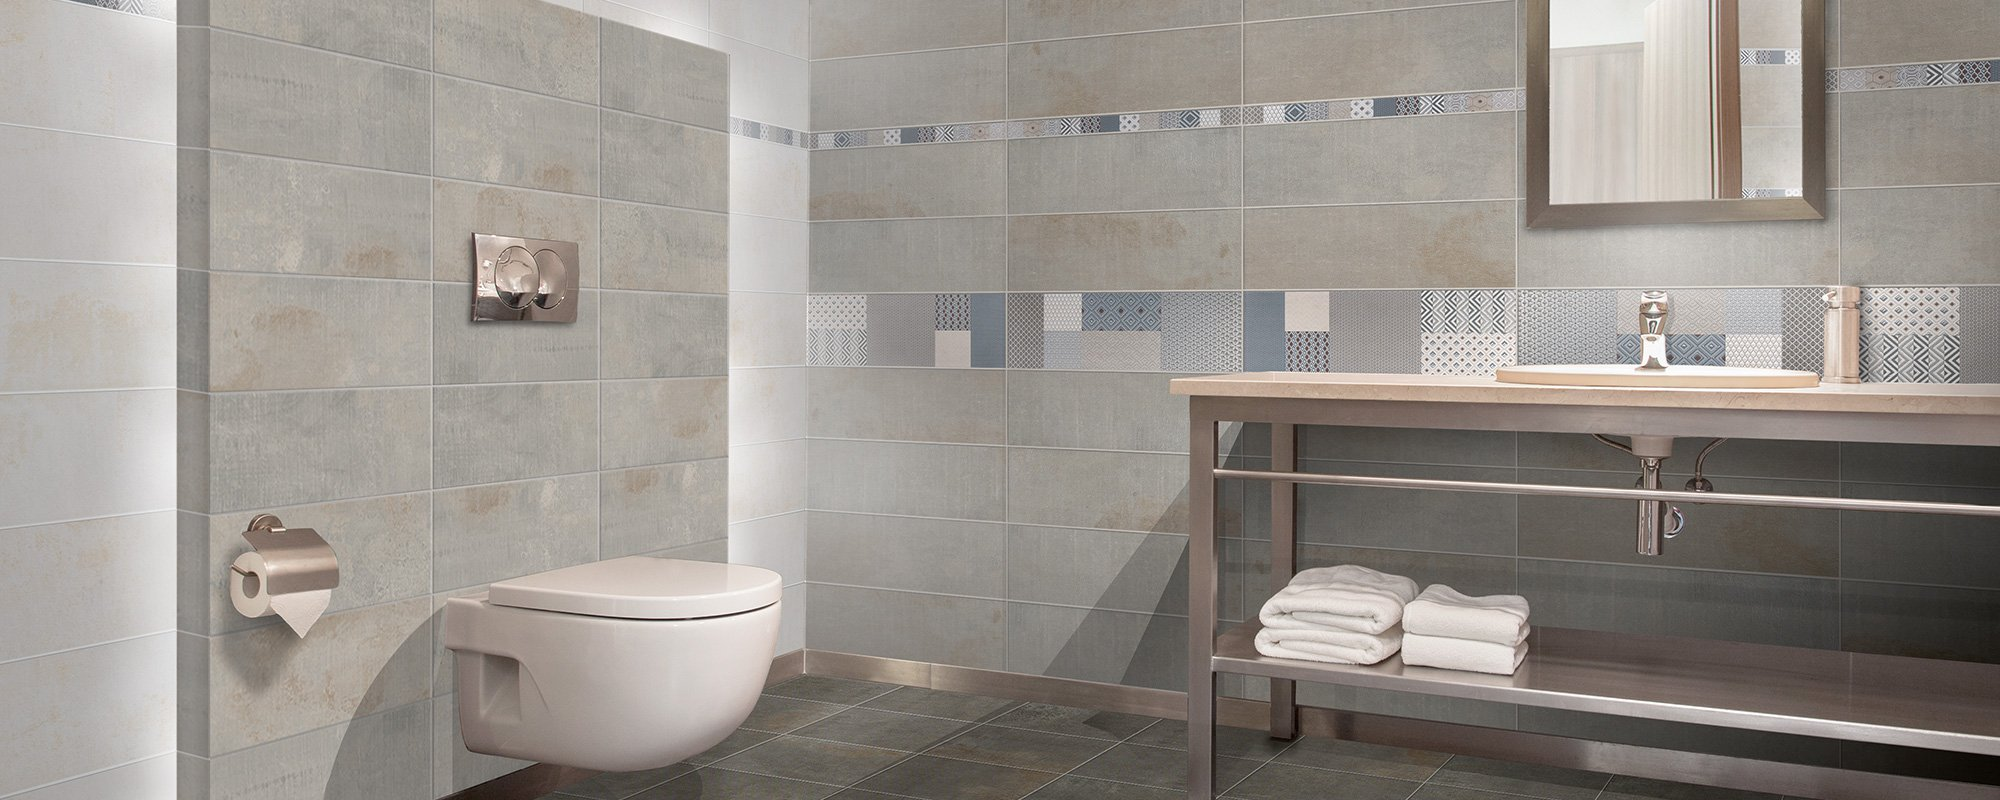 installed bathroom wall and floor tiles - Bathroom Tiles Redditch